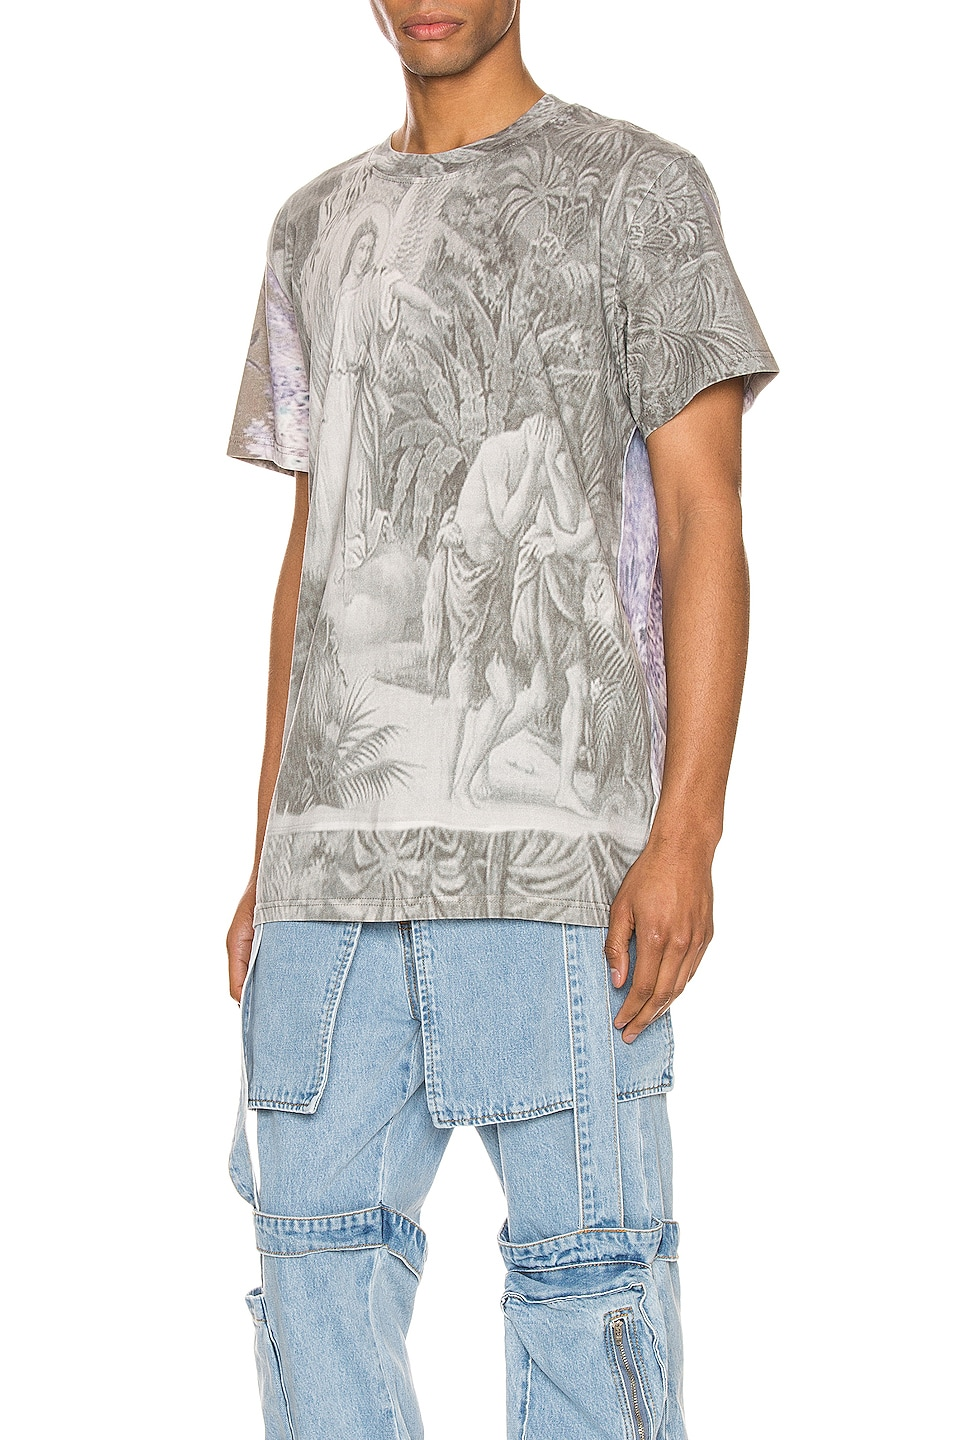 Image 3 of Who Decides War by Ev Bravado Out Of Eden Tee in Multi